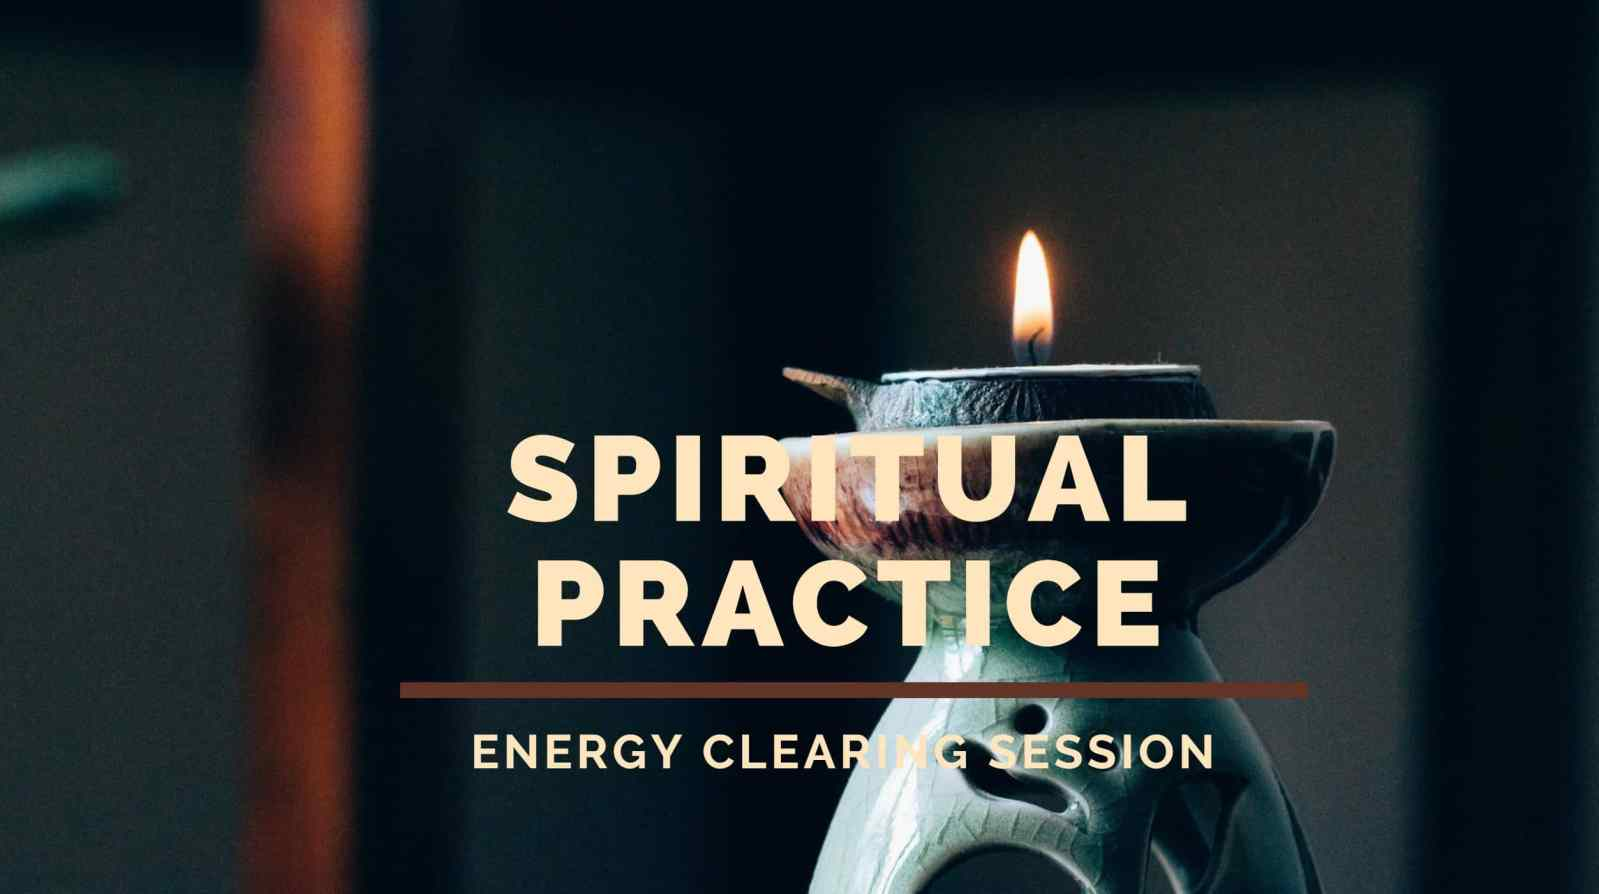 Energy Clearing for Your Spiritual Practice